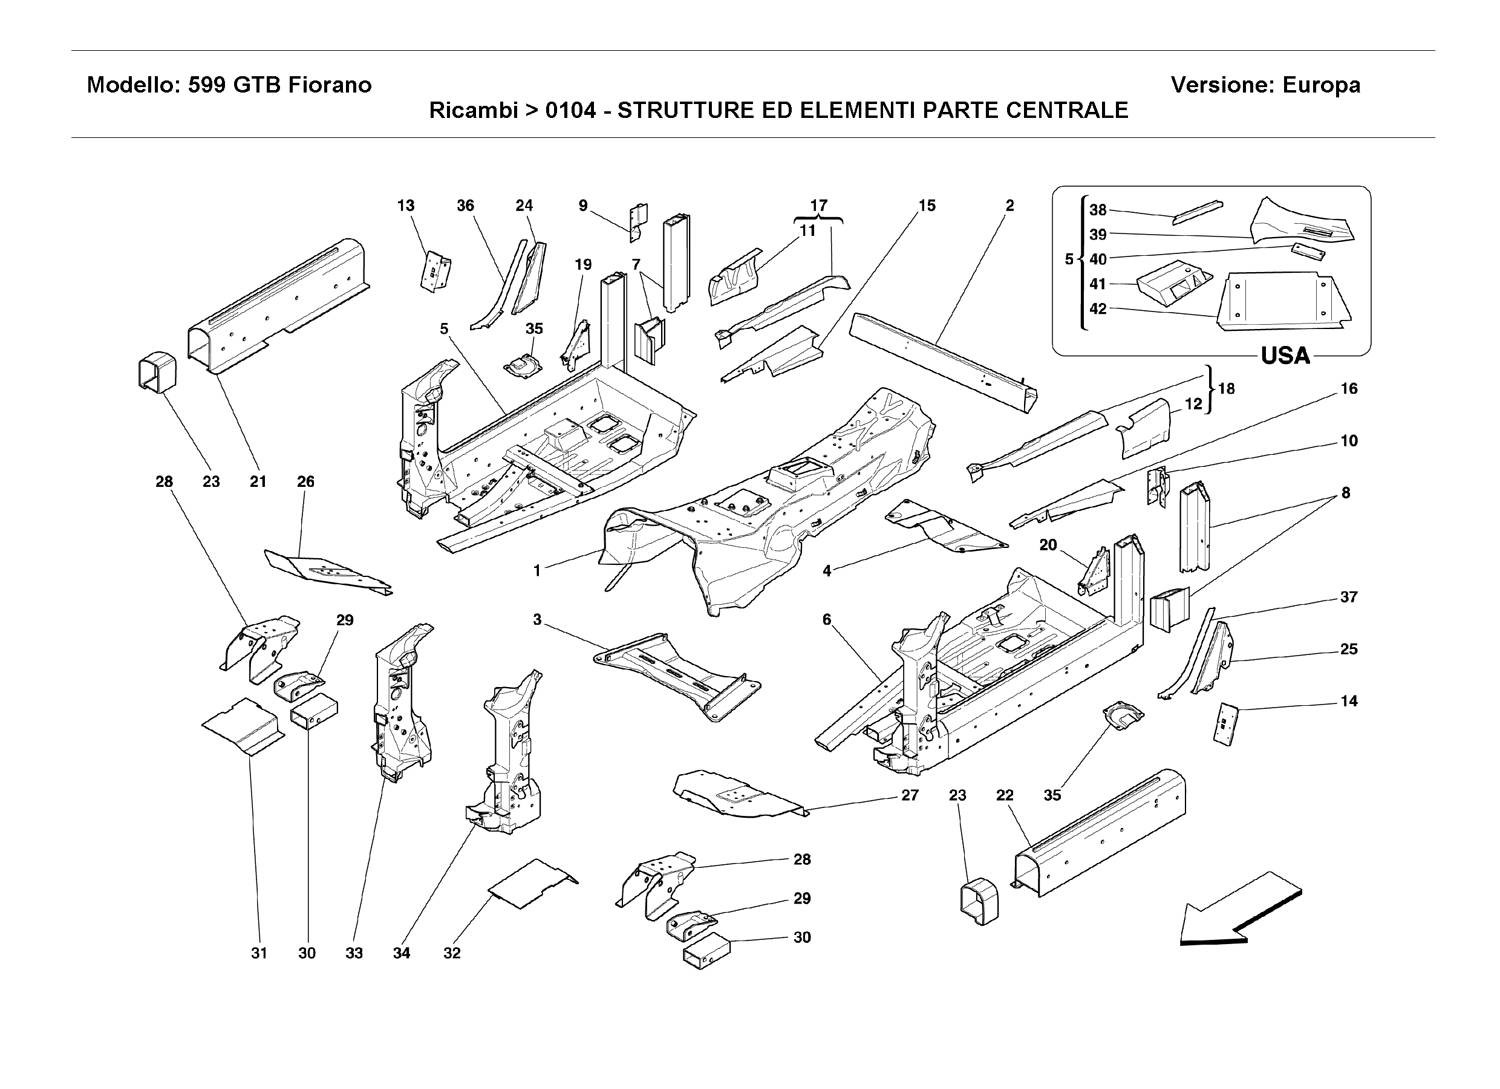 CENTRAL STRUCTURES AND COMPONENTS